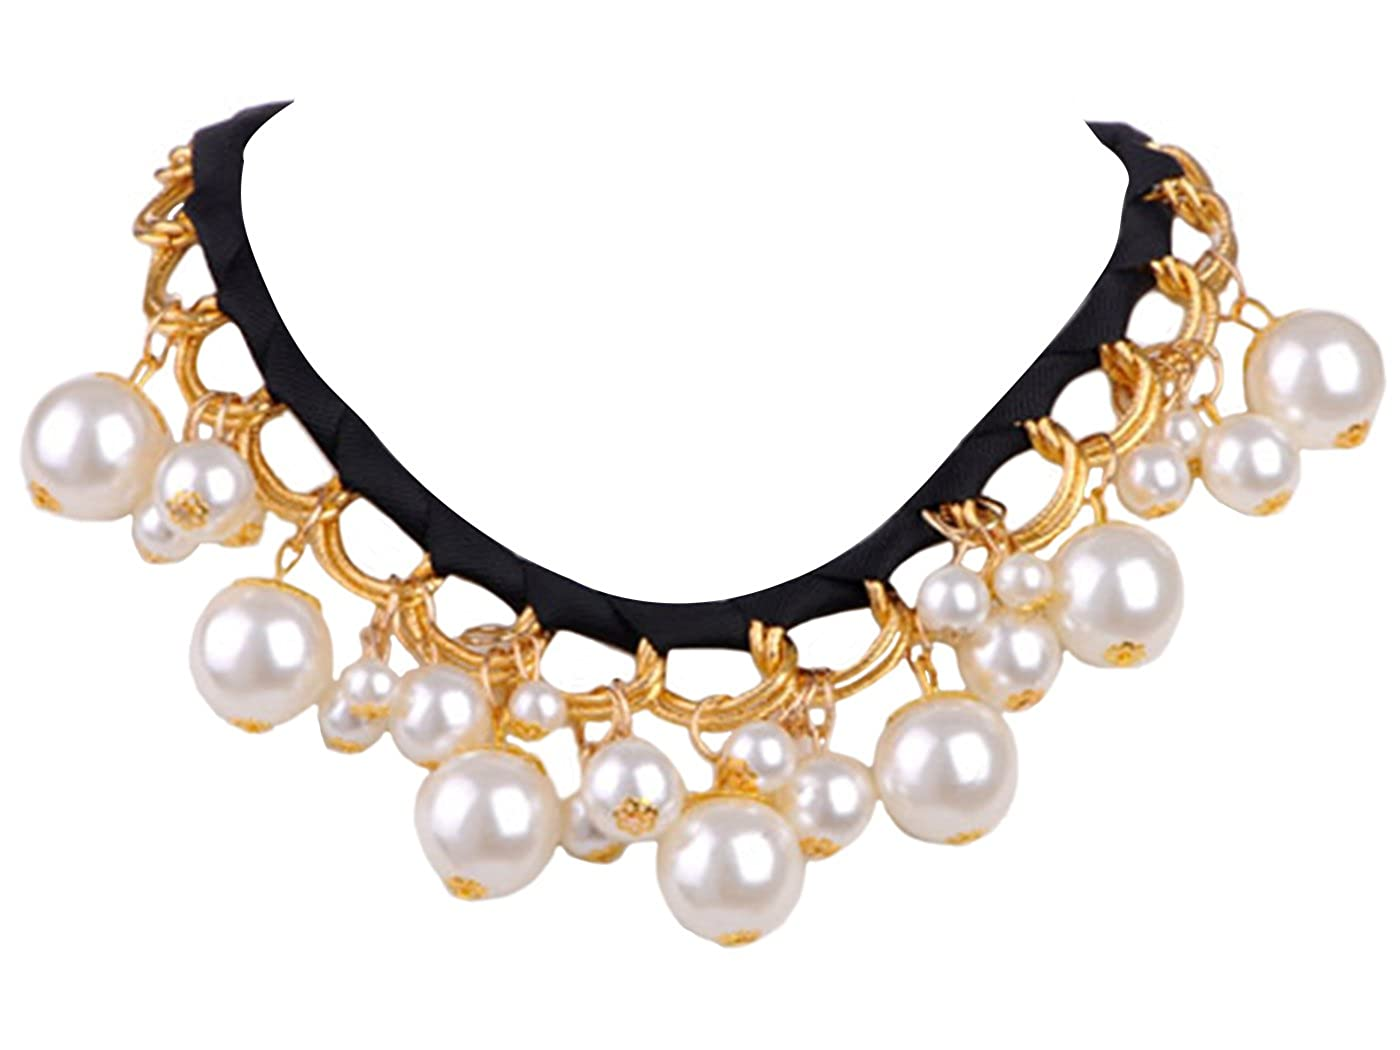 ee7fd96dc790e Amazon.com: Alilang Classic and Simple Faux Pearls and Baubles ...